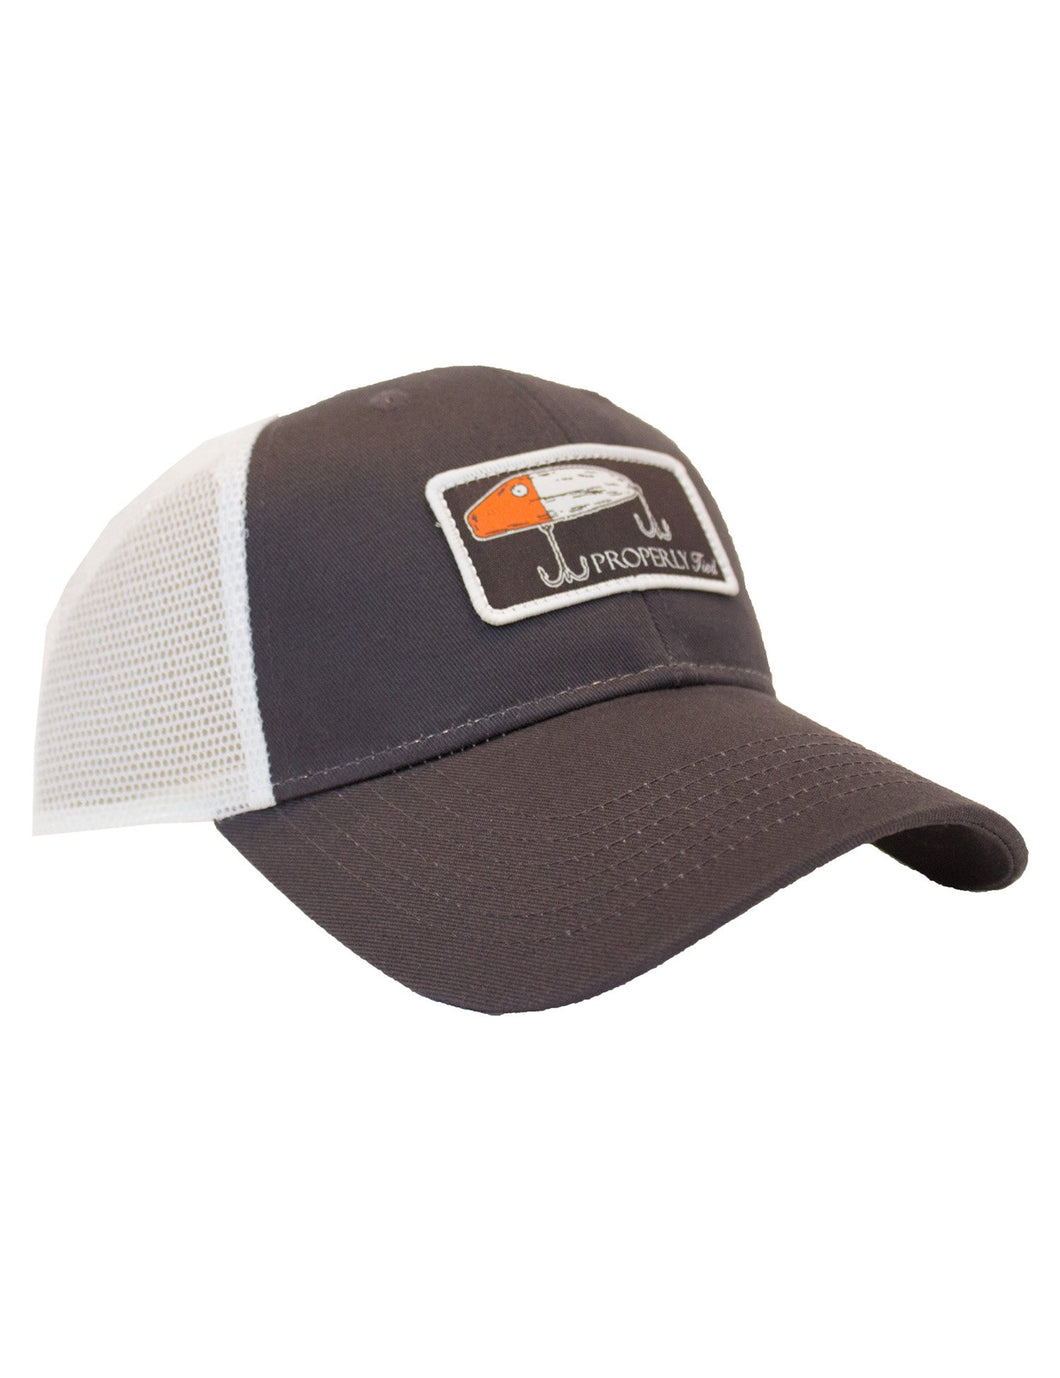 Lure Trucker Hat by Properly Tied